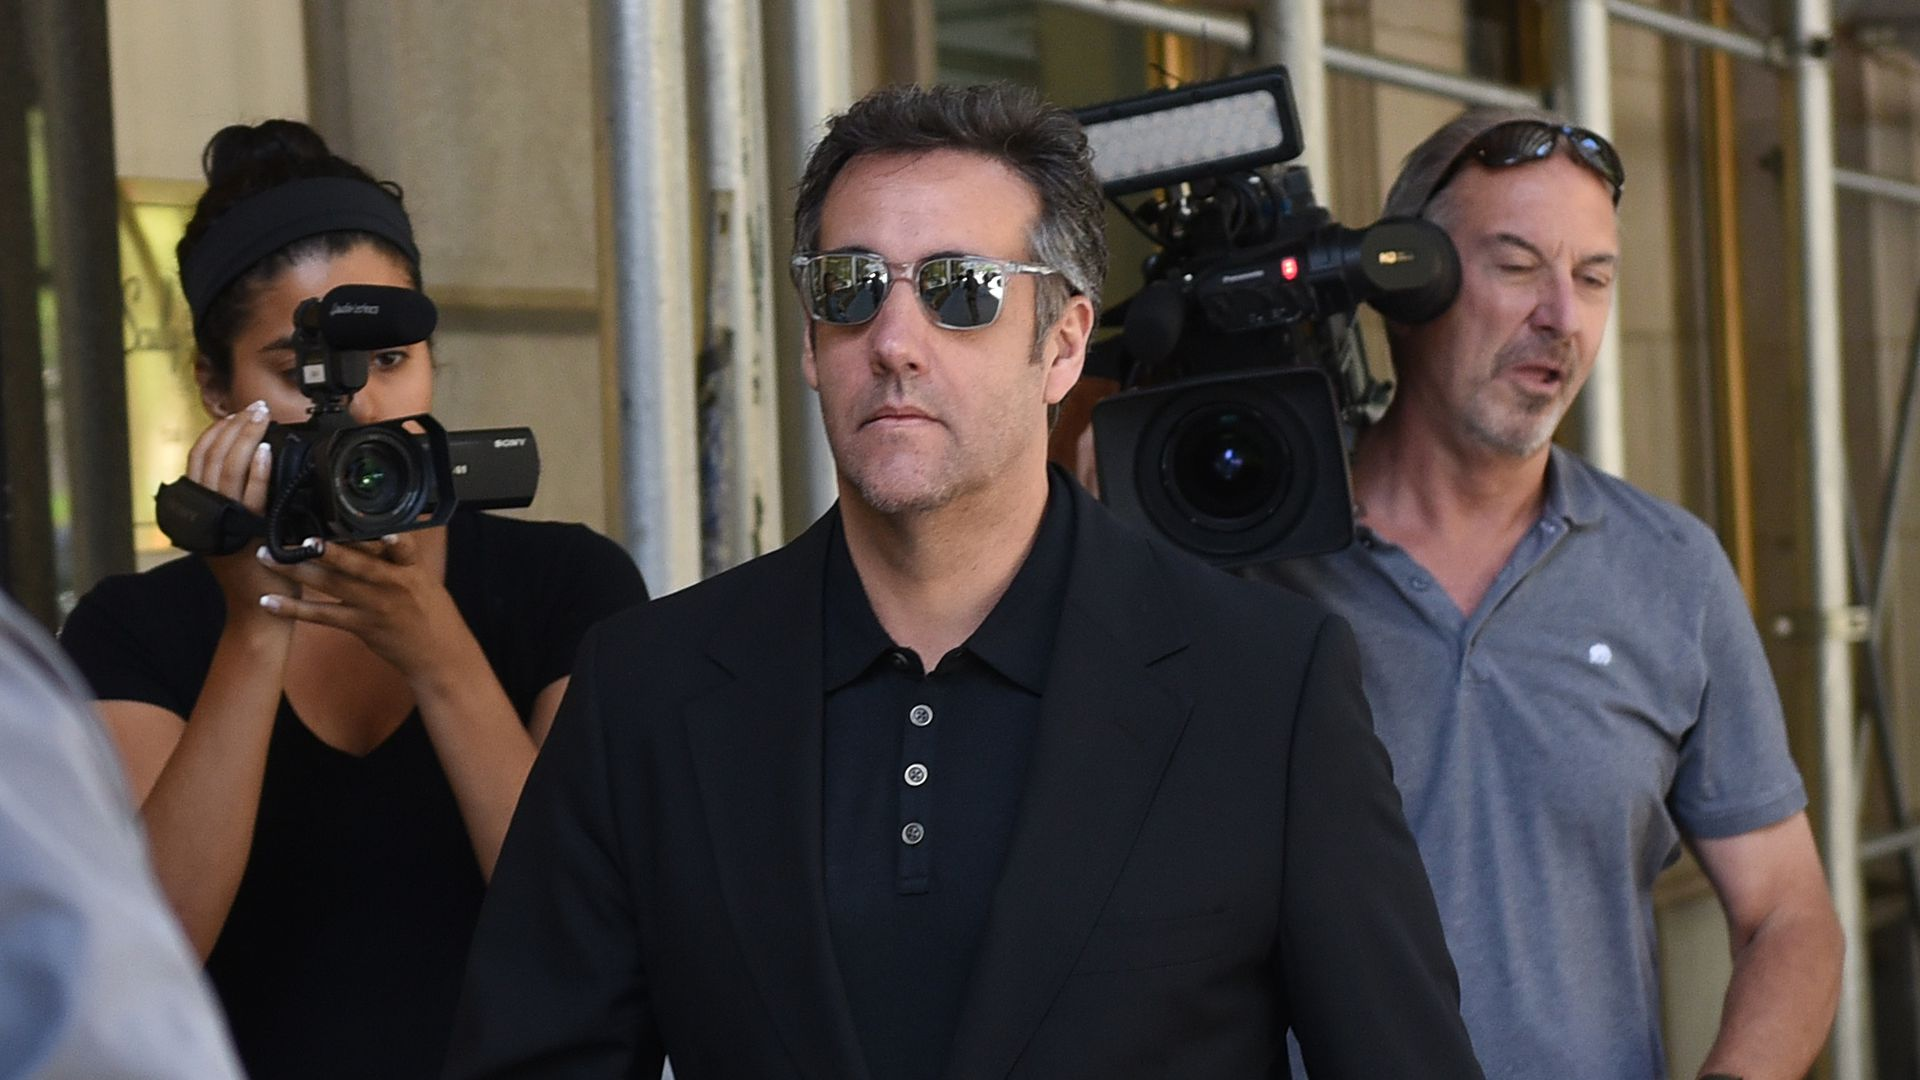 Michael Cohen wearing sunglasses and surrounded by paparazzi